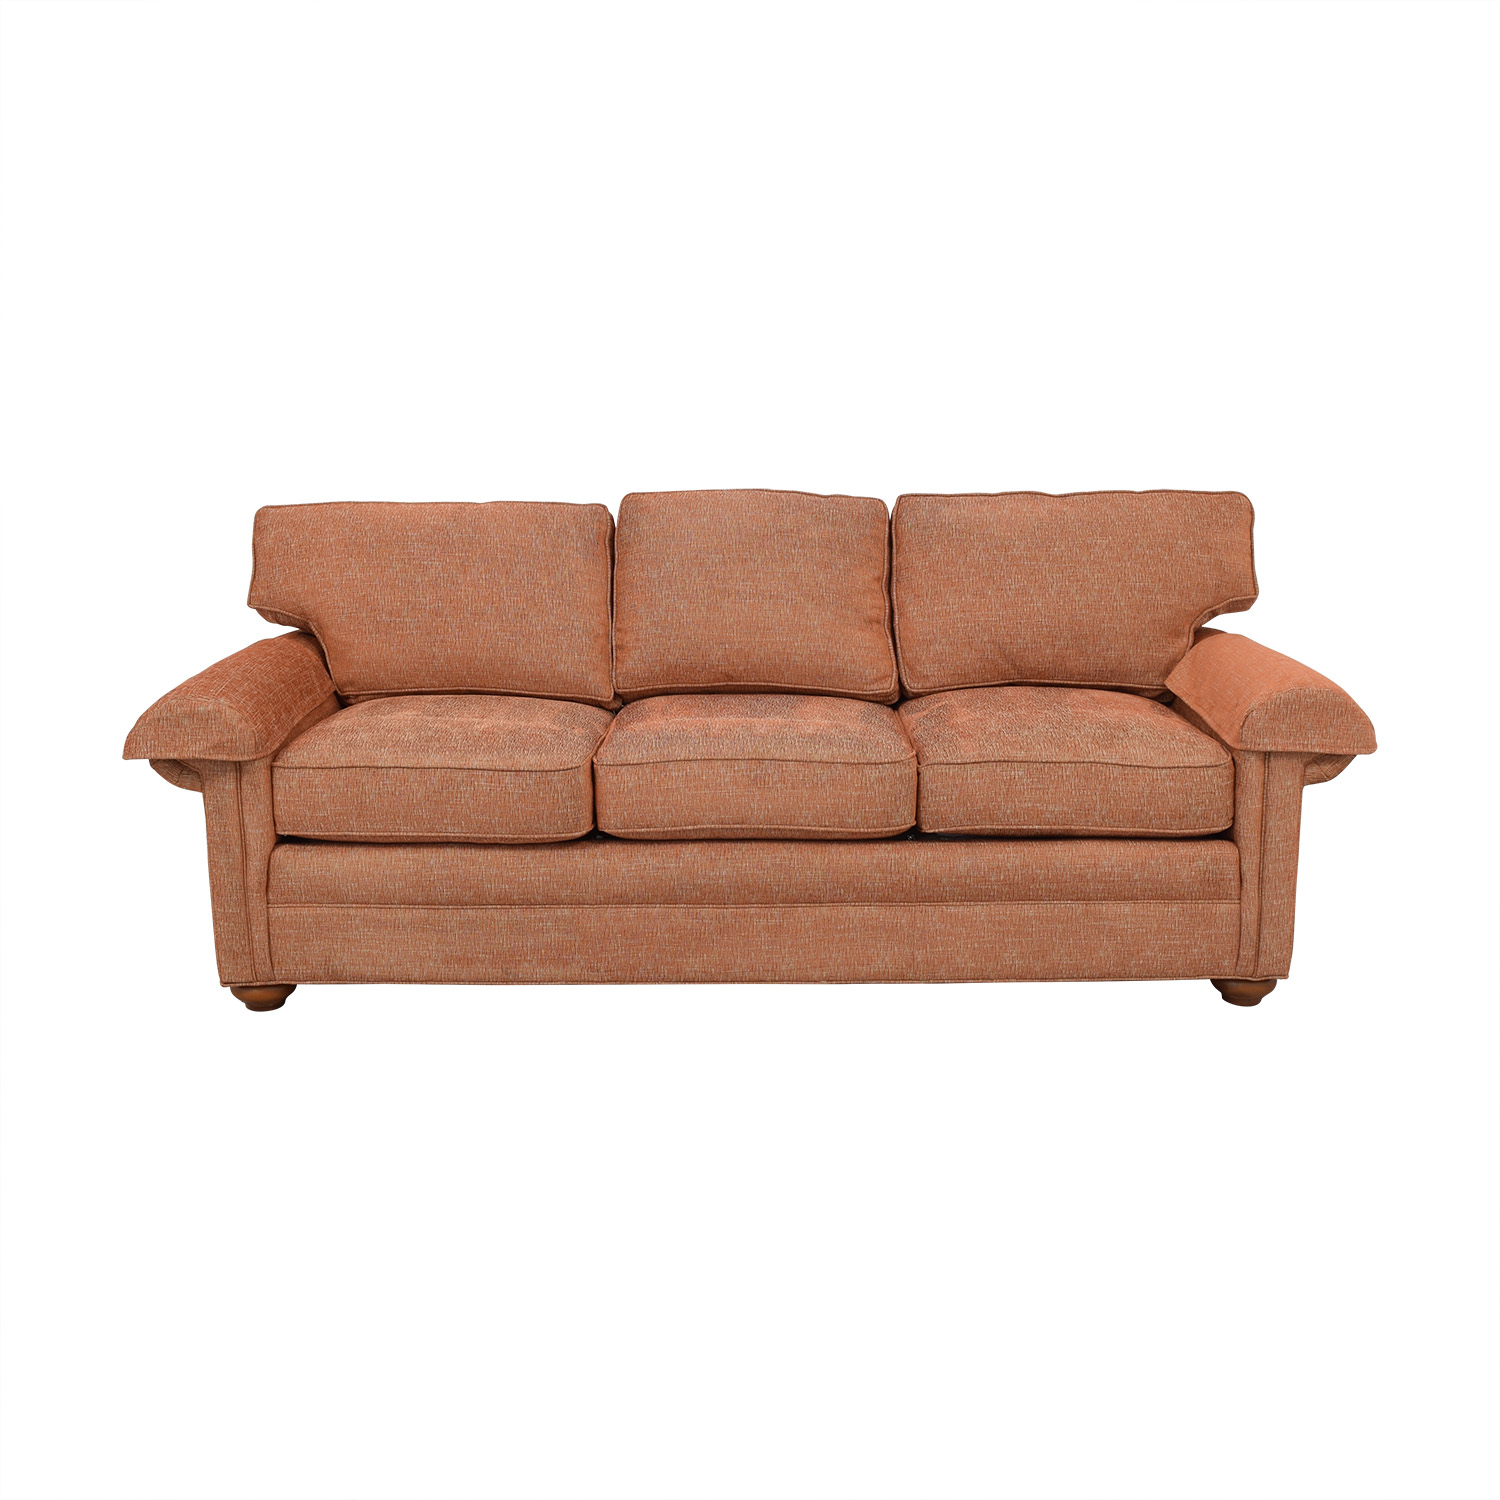 Greenbaum Interiors Greenbaum Interiors Three Seat Sofa Classic Sofas